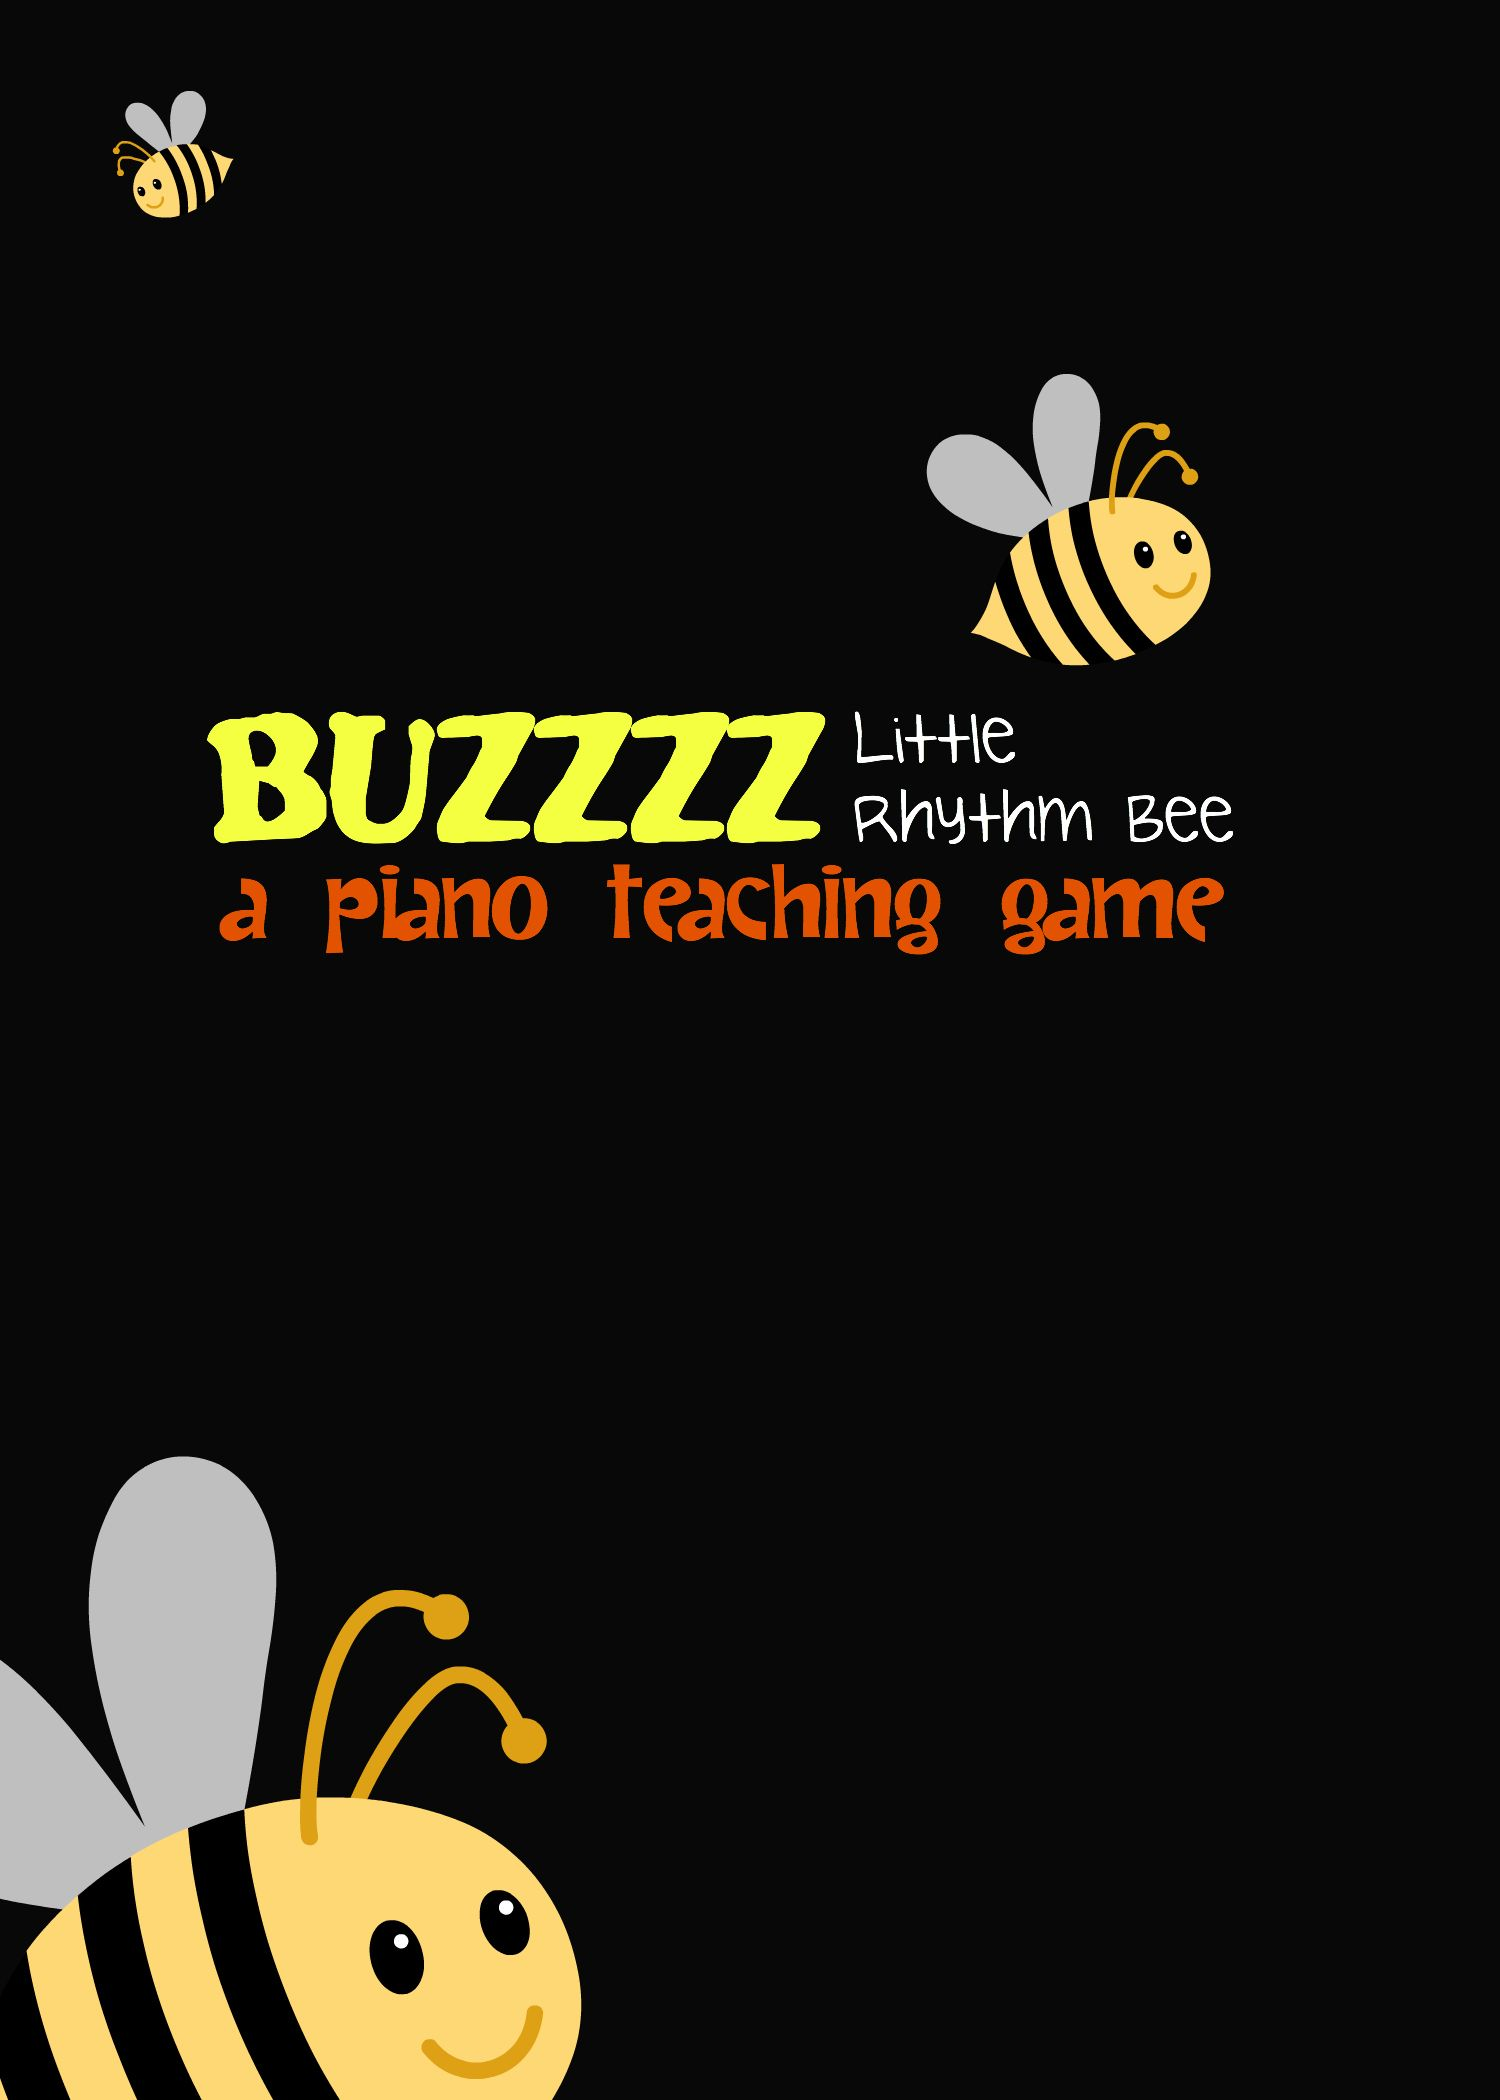 Buzz Little Rhythm Bee A Piano Teaching Game